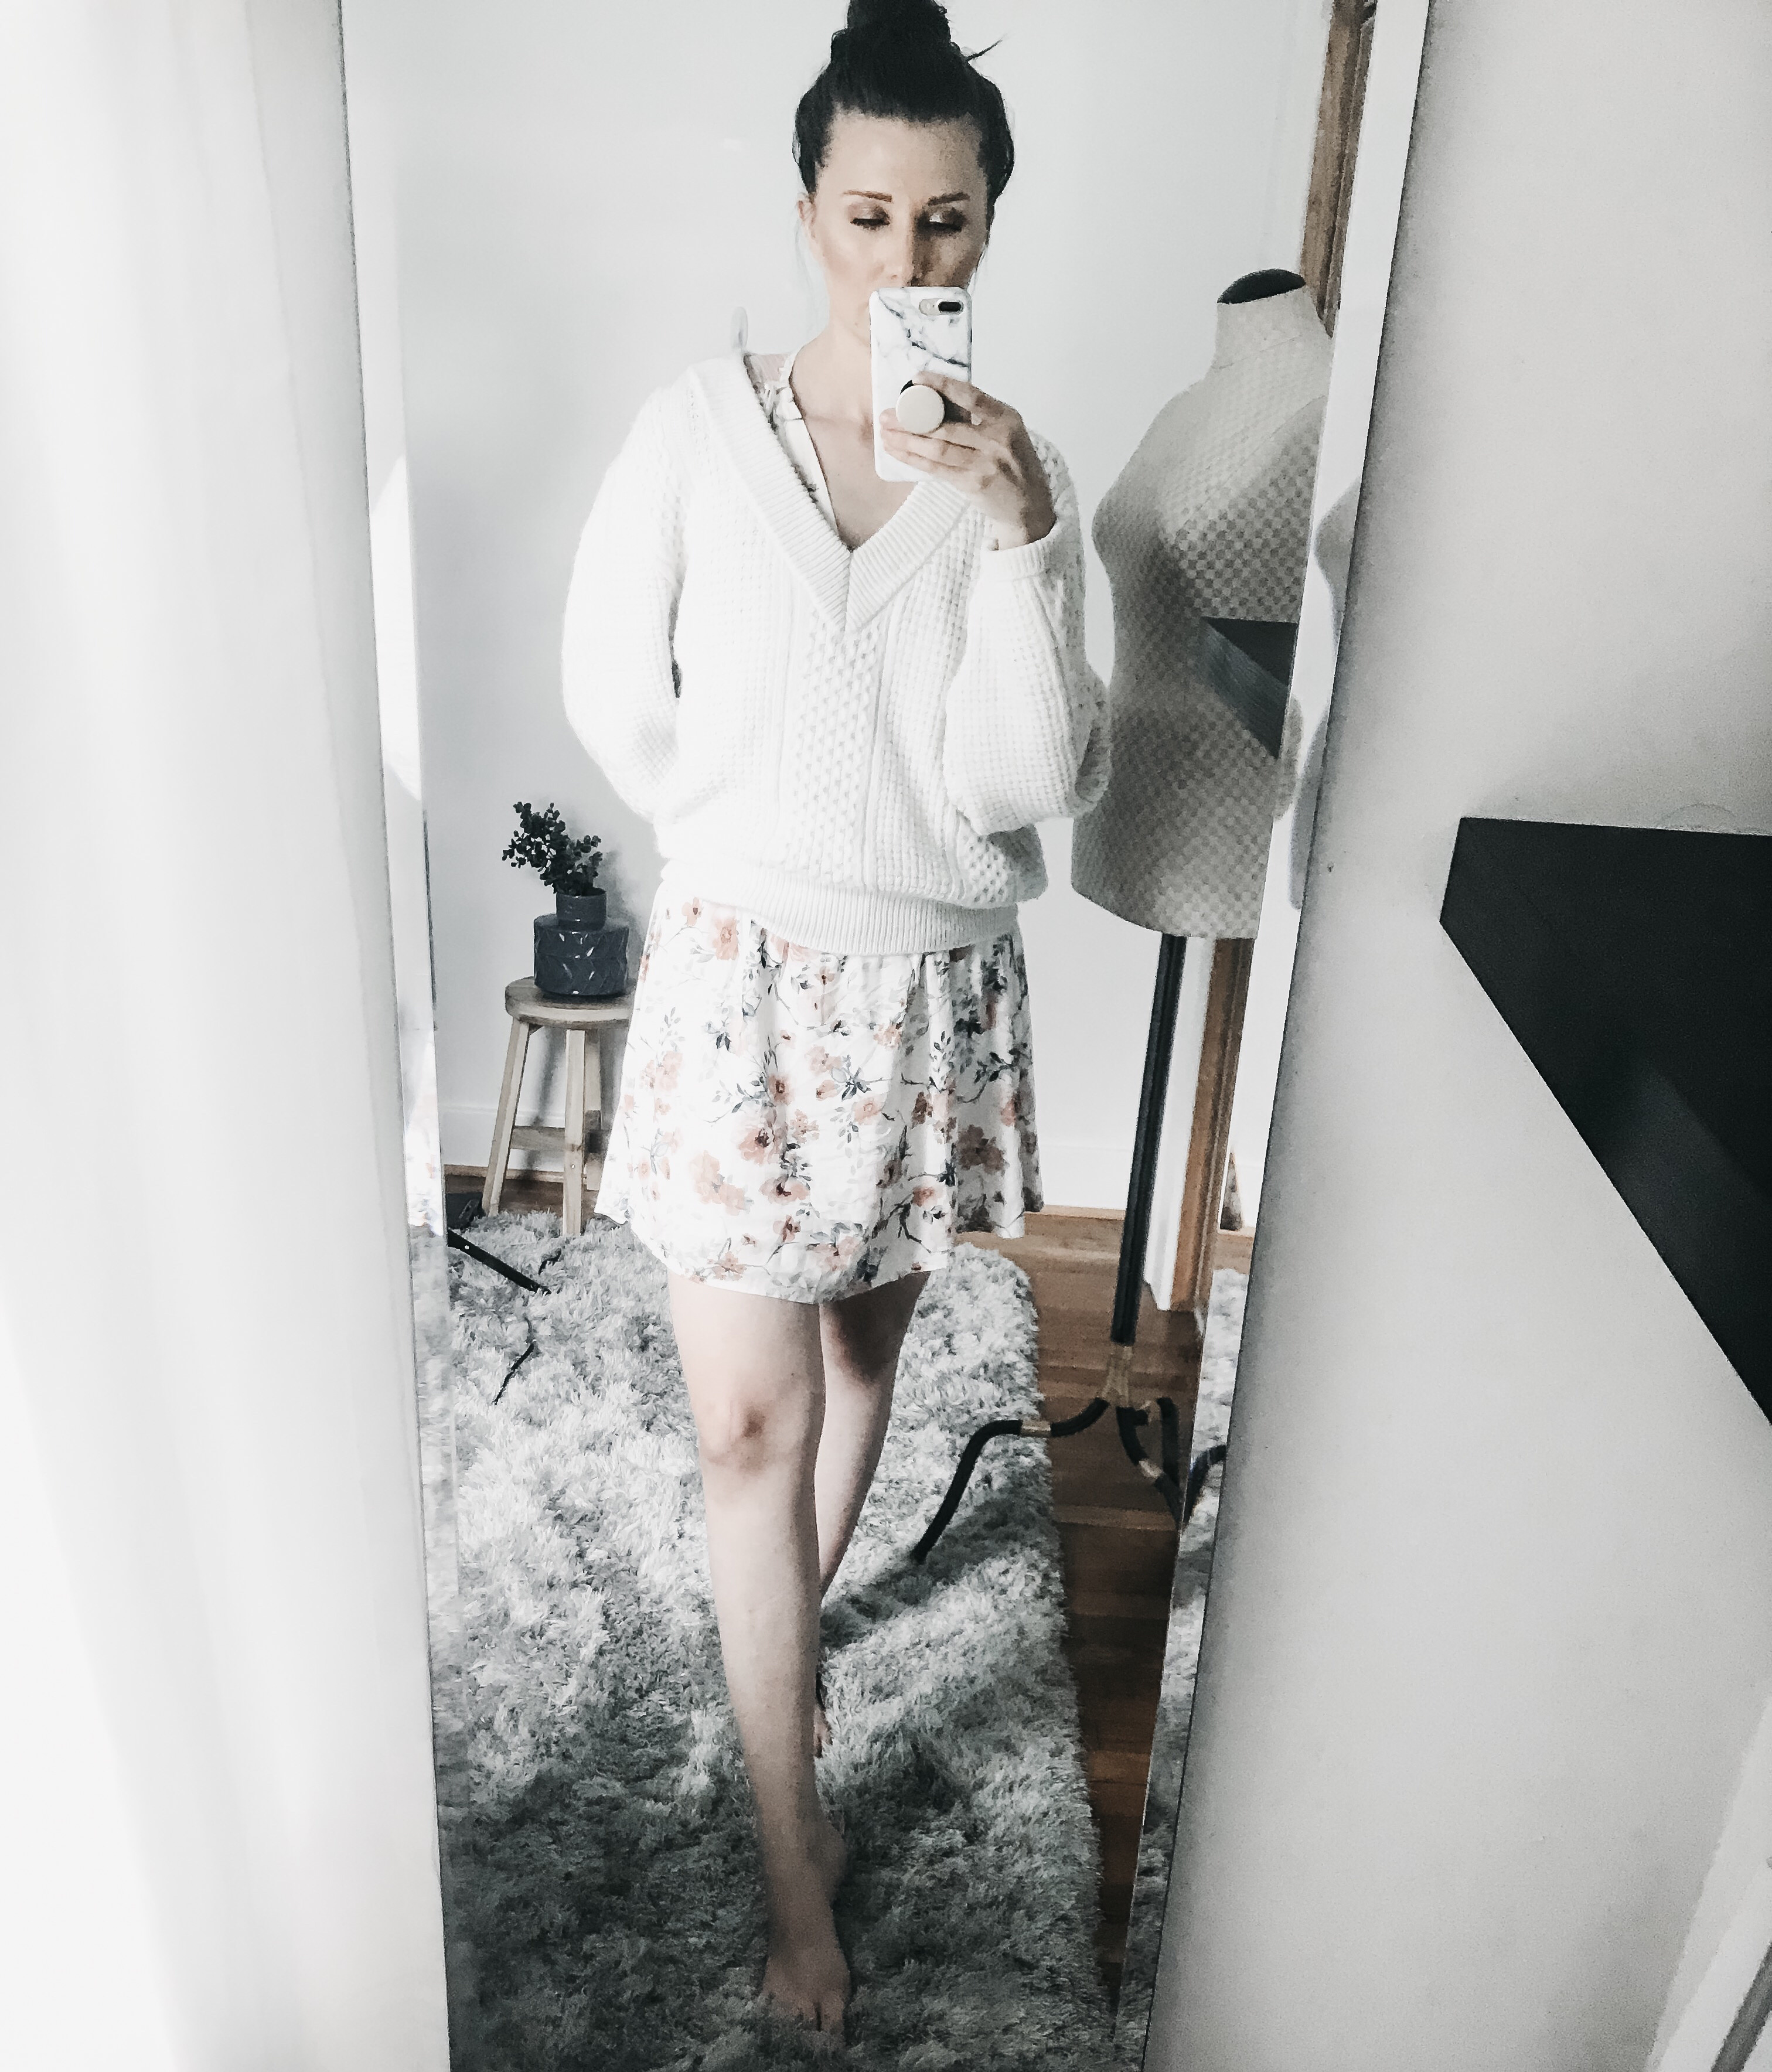 OOTW | Outfit of the Week 3